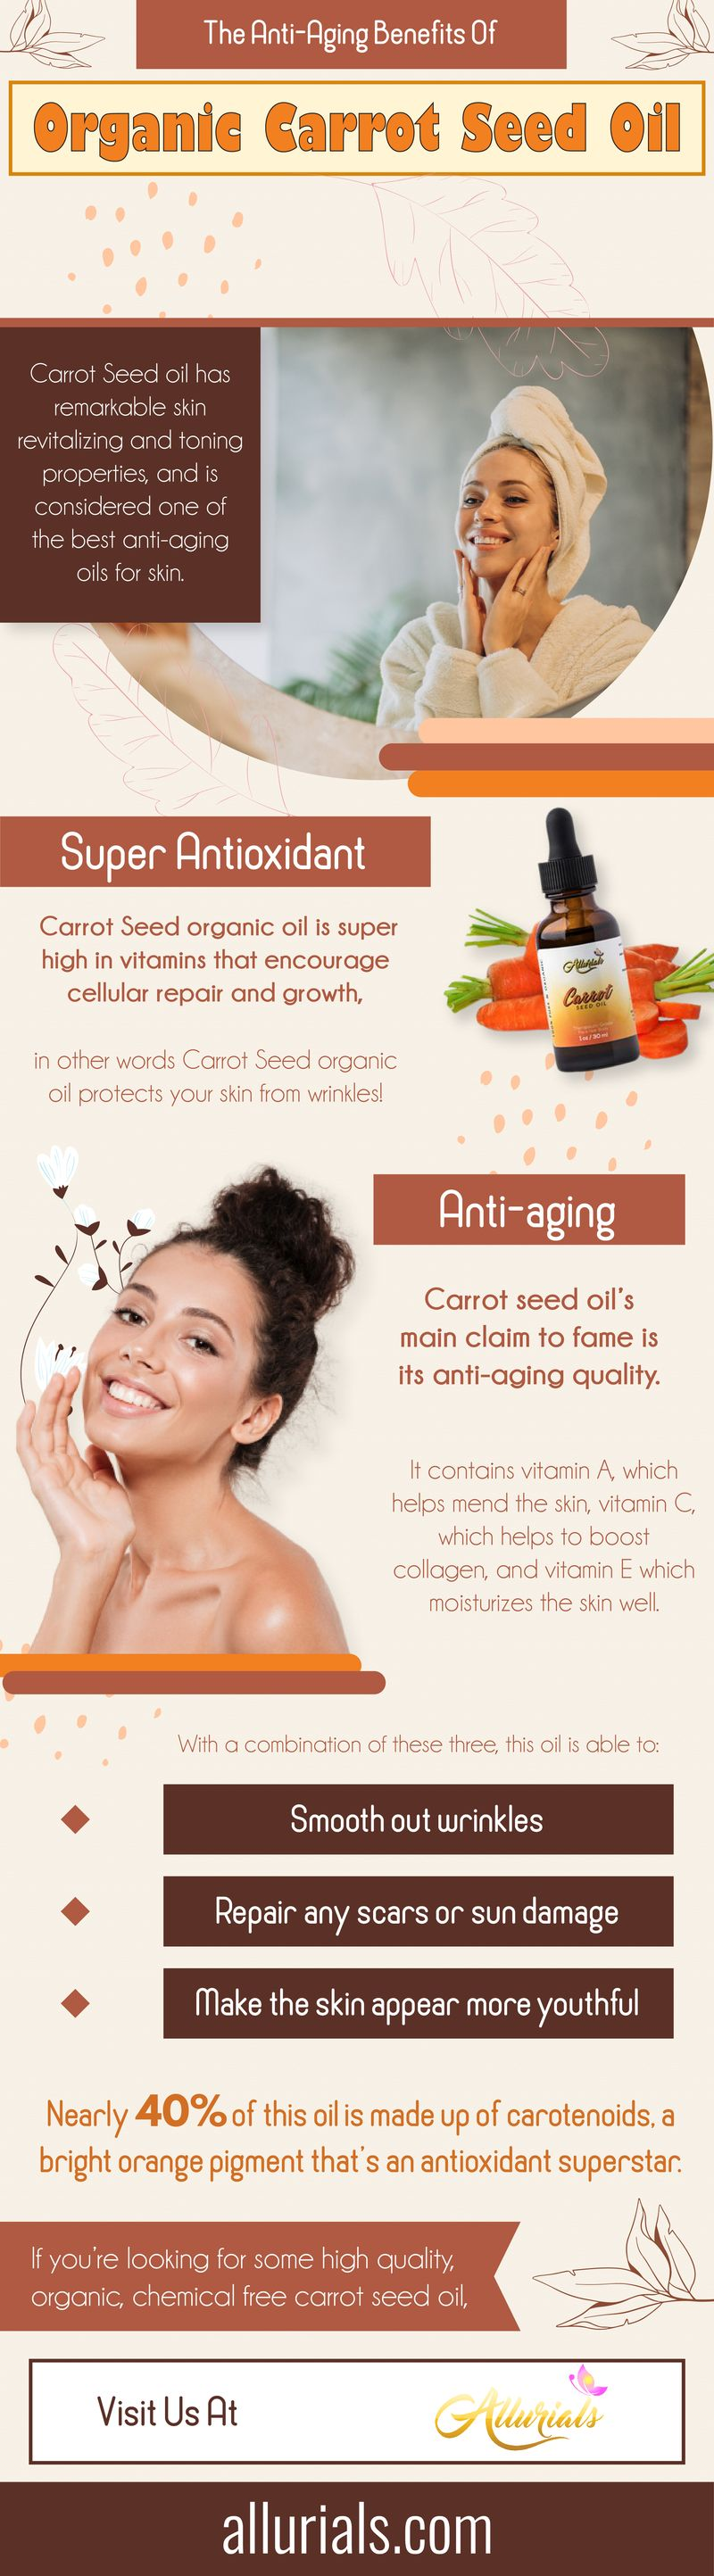 The Anti-Aging Benefits Of Organic Carrot Seed Oil